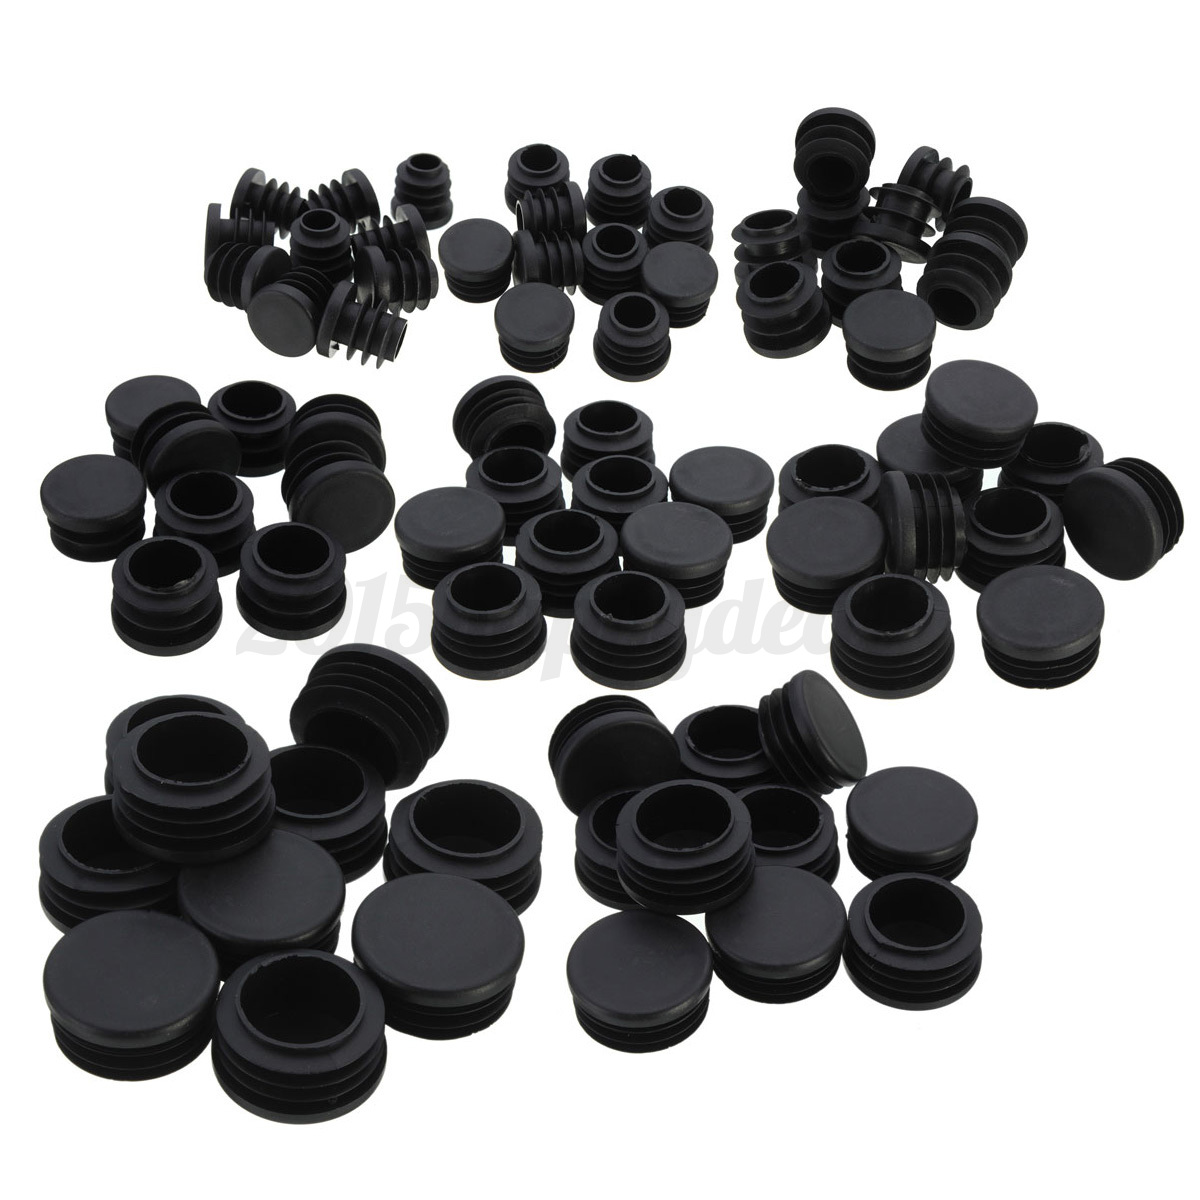 Uk new pcs size plastic end caps cap insert plugs bung